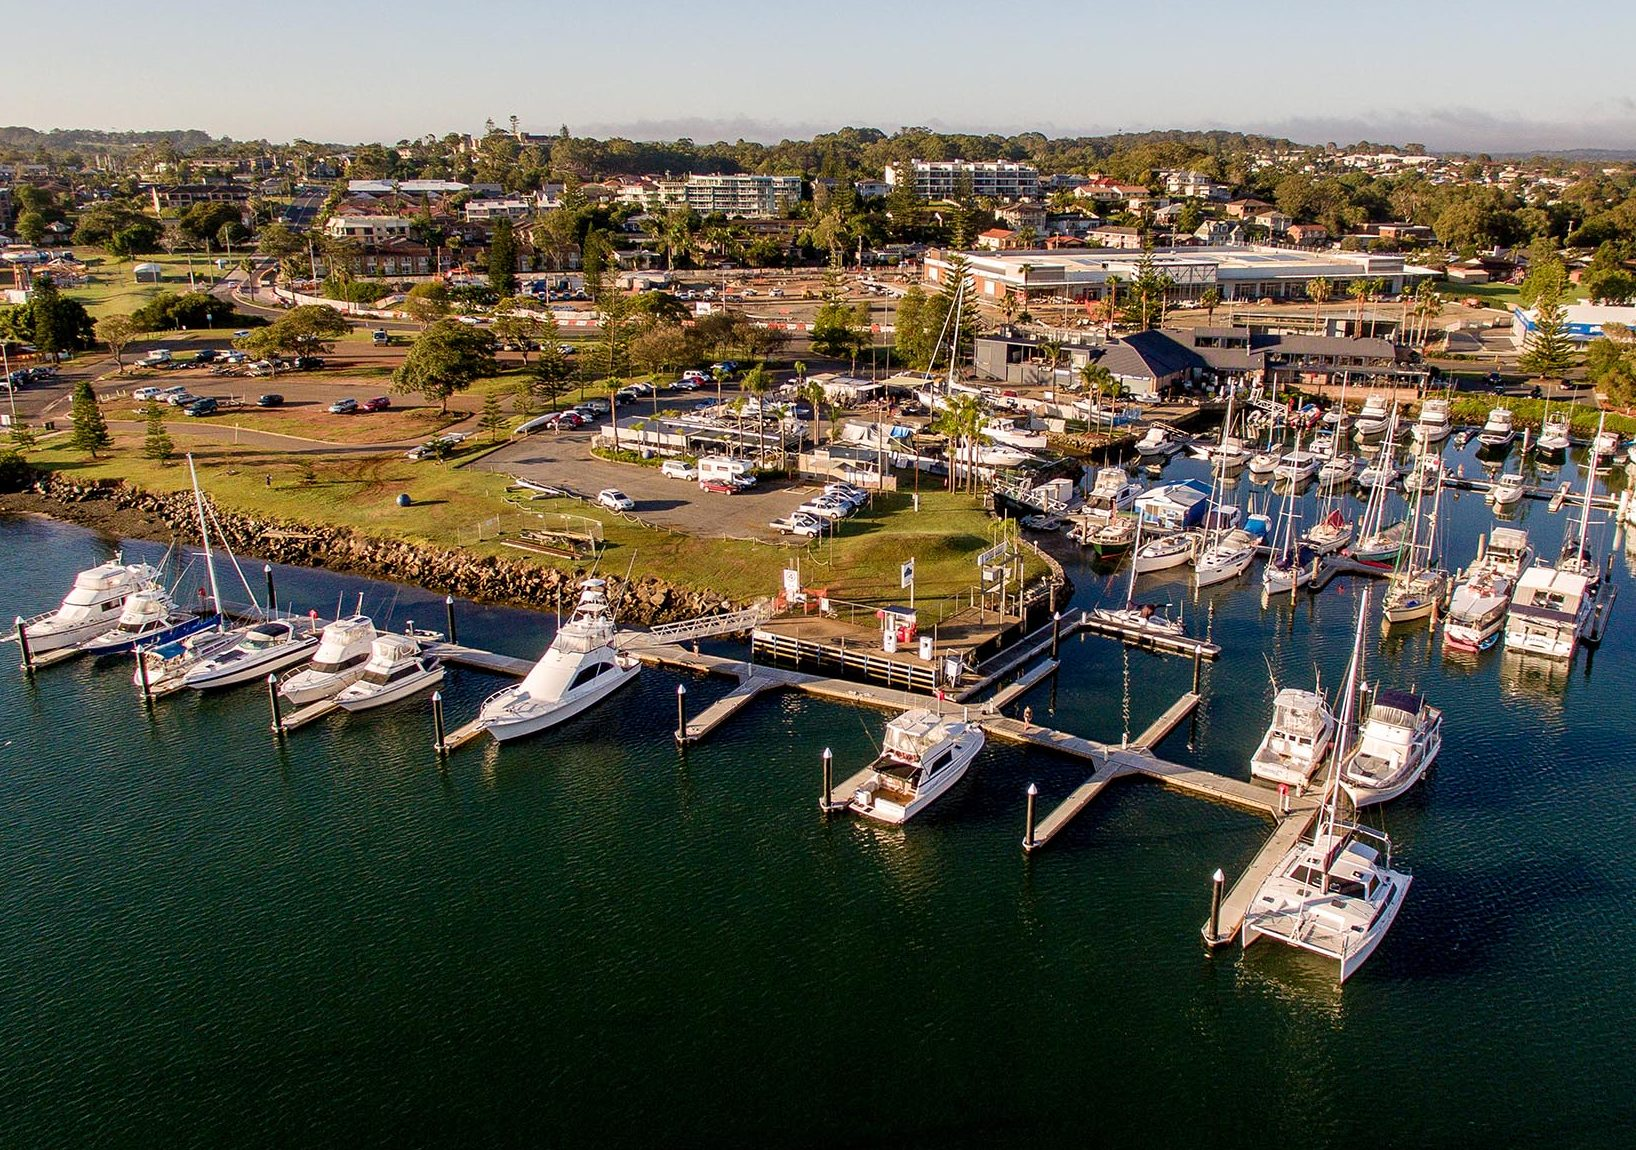 Port Macquarie Marina in NSW, Australia welcomed visitors during the busy holiday season with brand new floating docks and an additional 14 berths with the help of Bellingham Marine.